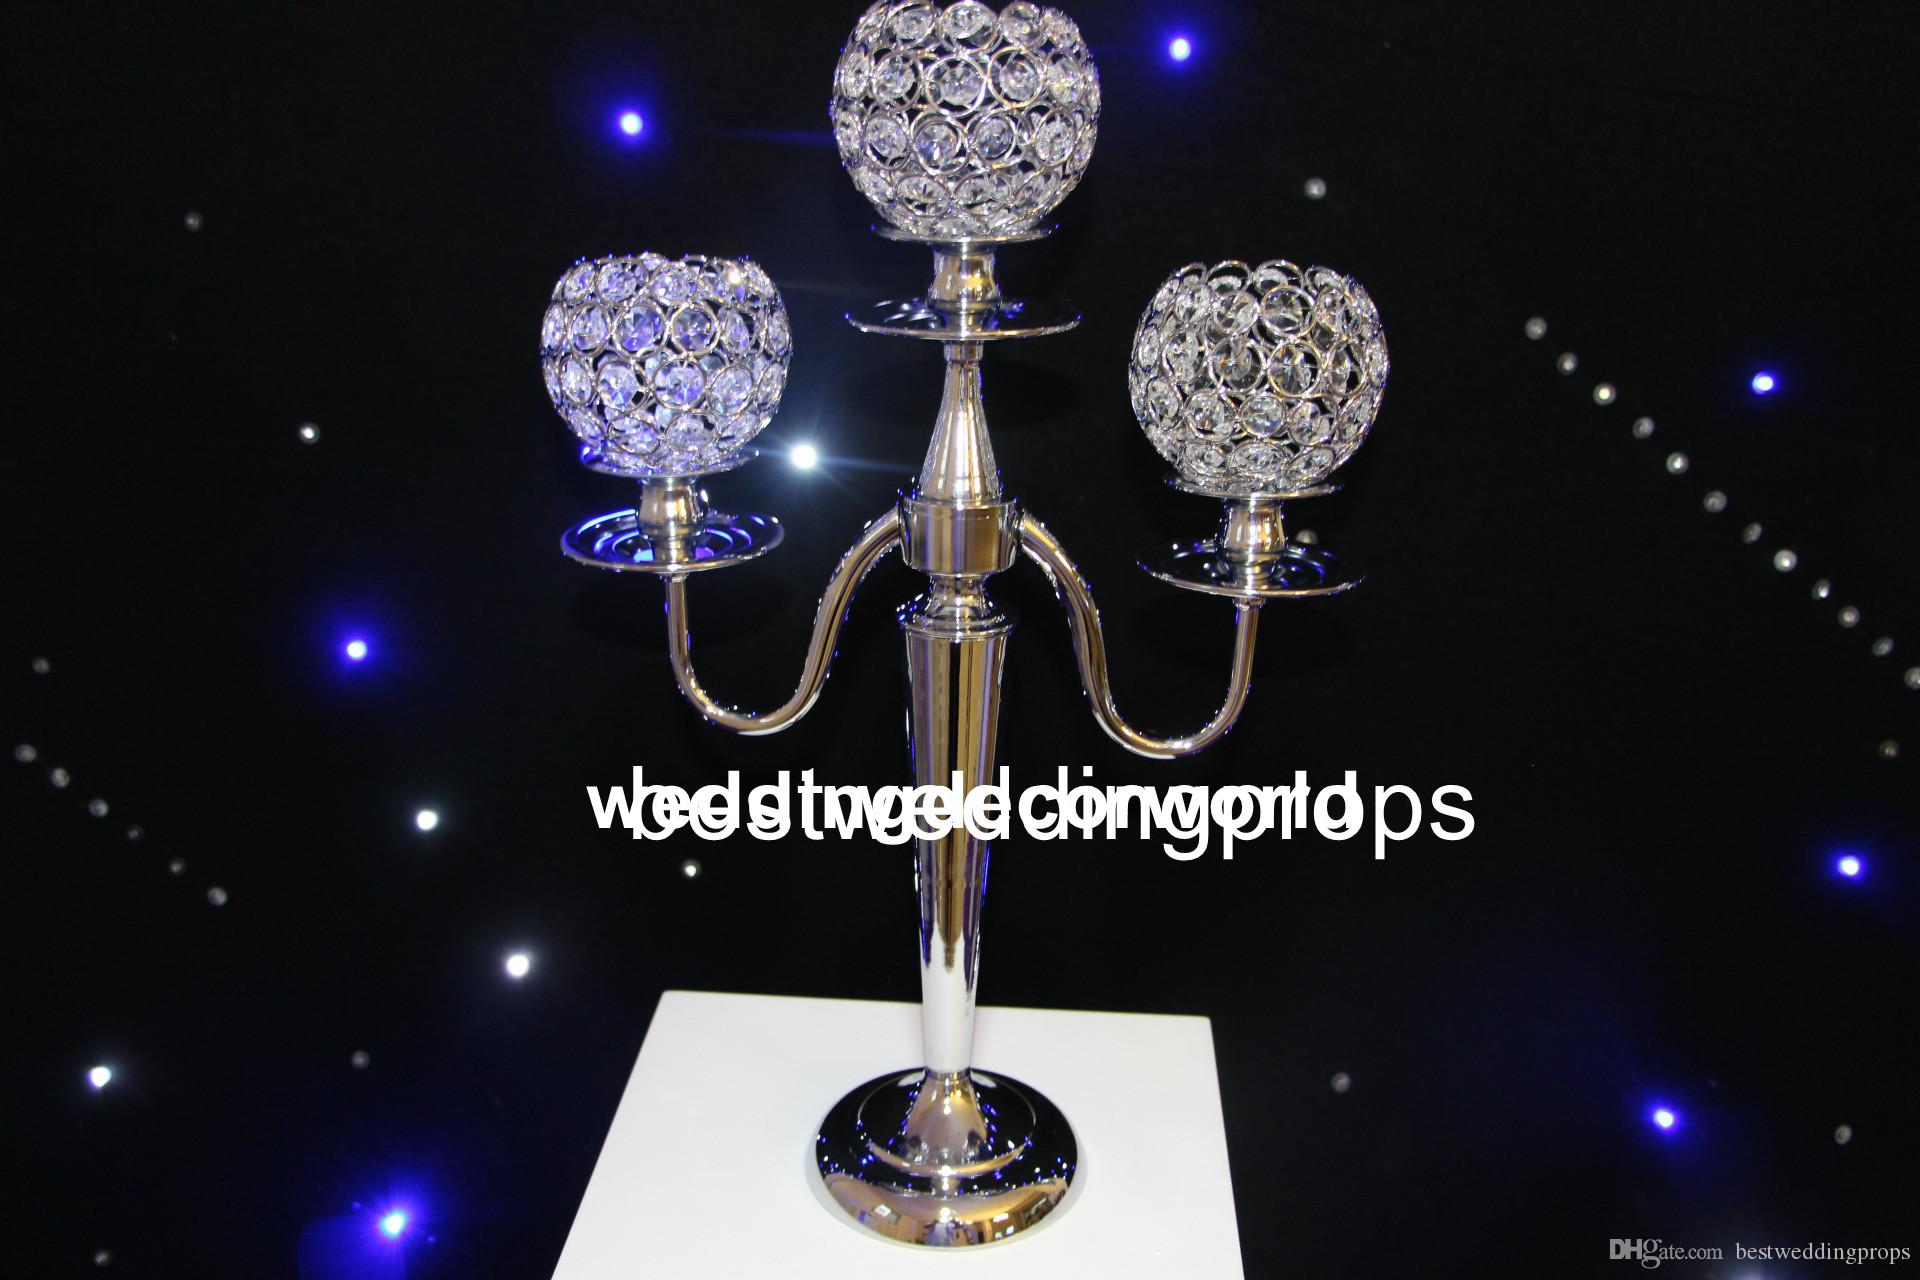 new style sliver Gold 3 Arm Crystal Candelabra Votive Candle Holders Wedding Centerpieces decor731